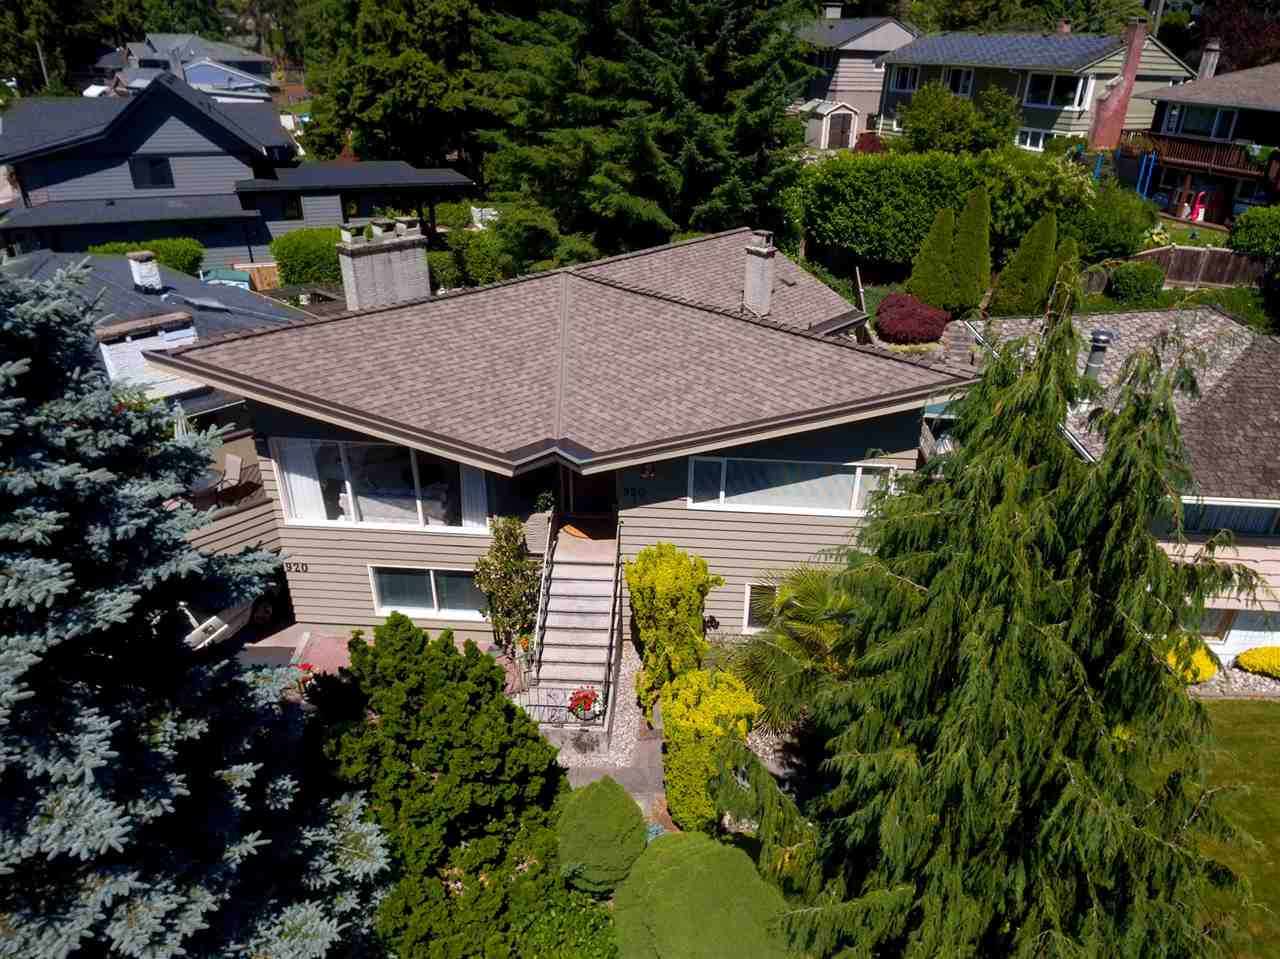 Detached at 920 BELVEDERE DRIVE, North Vancouver, British Columbia. Image 1